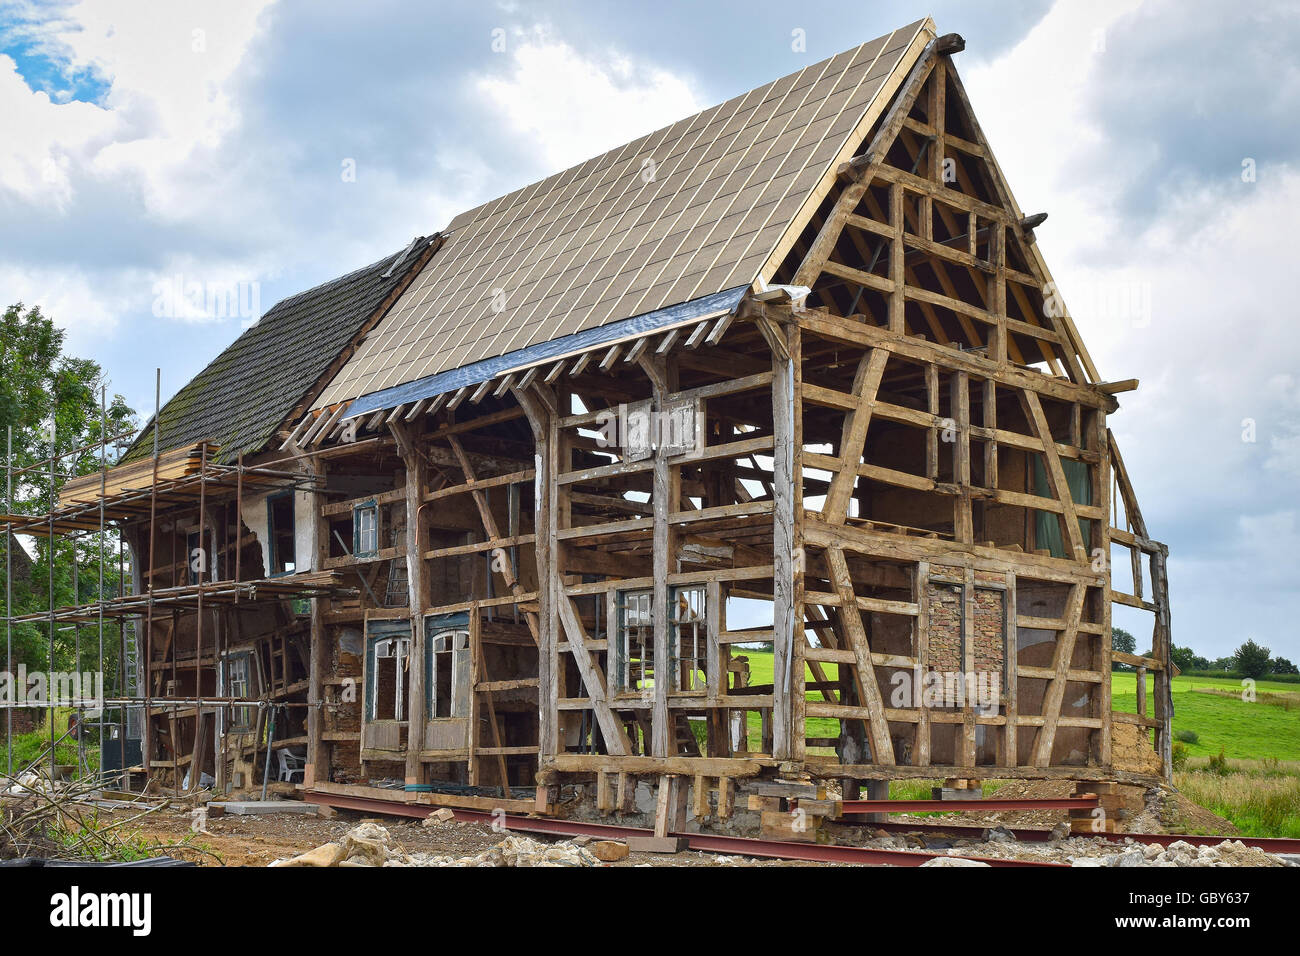 Timber frame of a half-timbered house under reconstruction - Stock Image